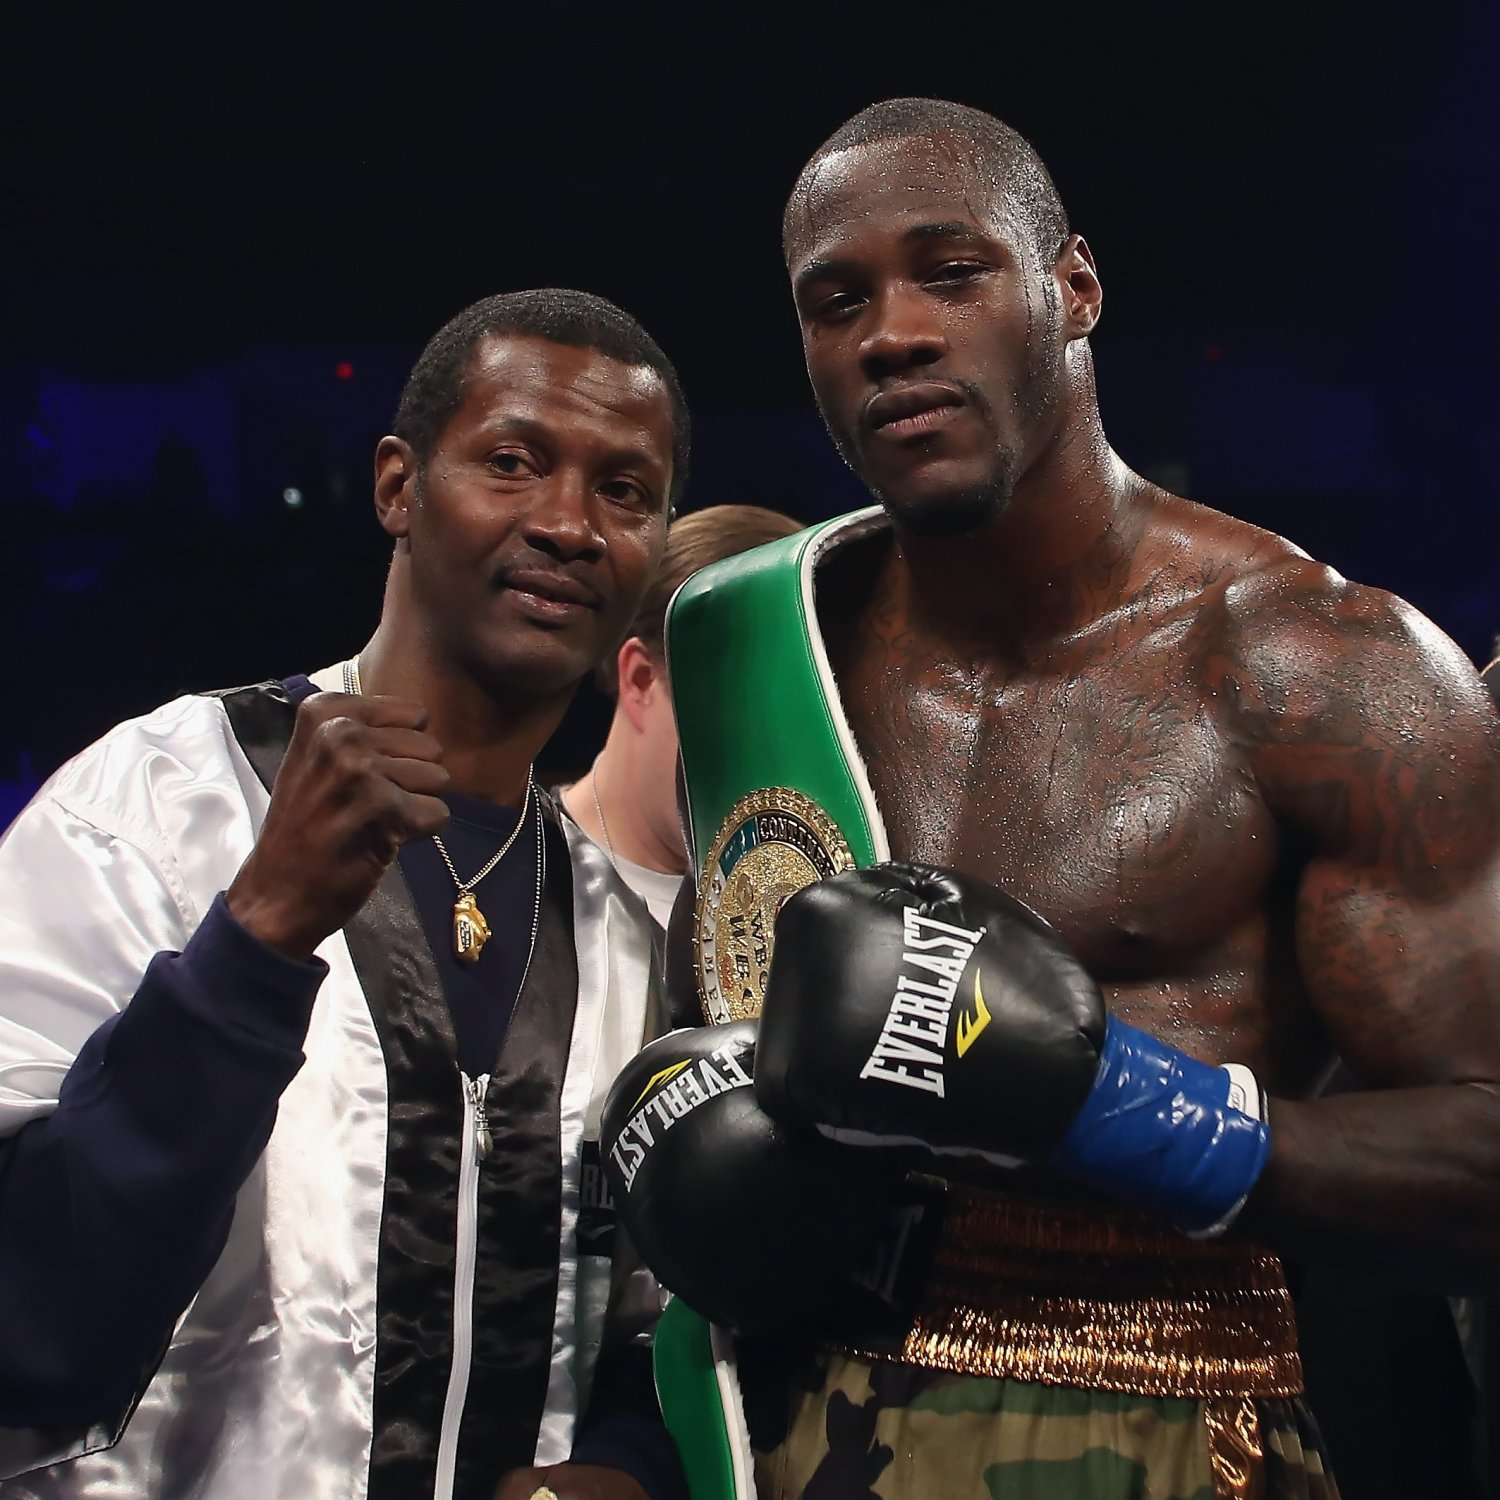 Deontay Wilder Finally Ready To Show He's The Real Deal